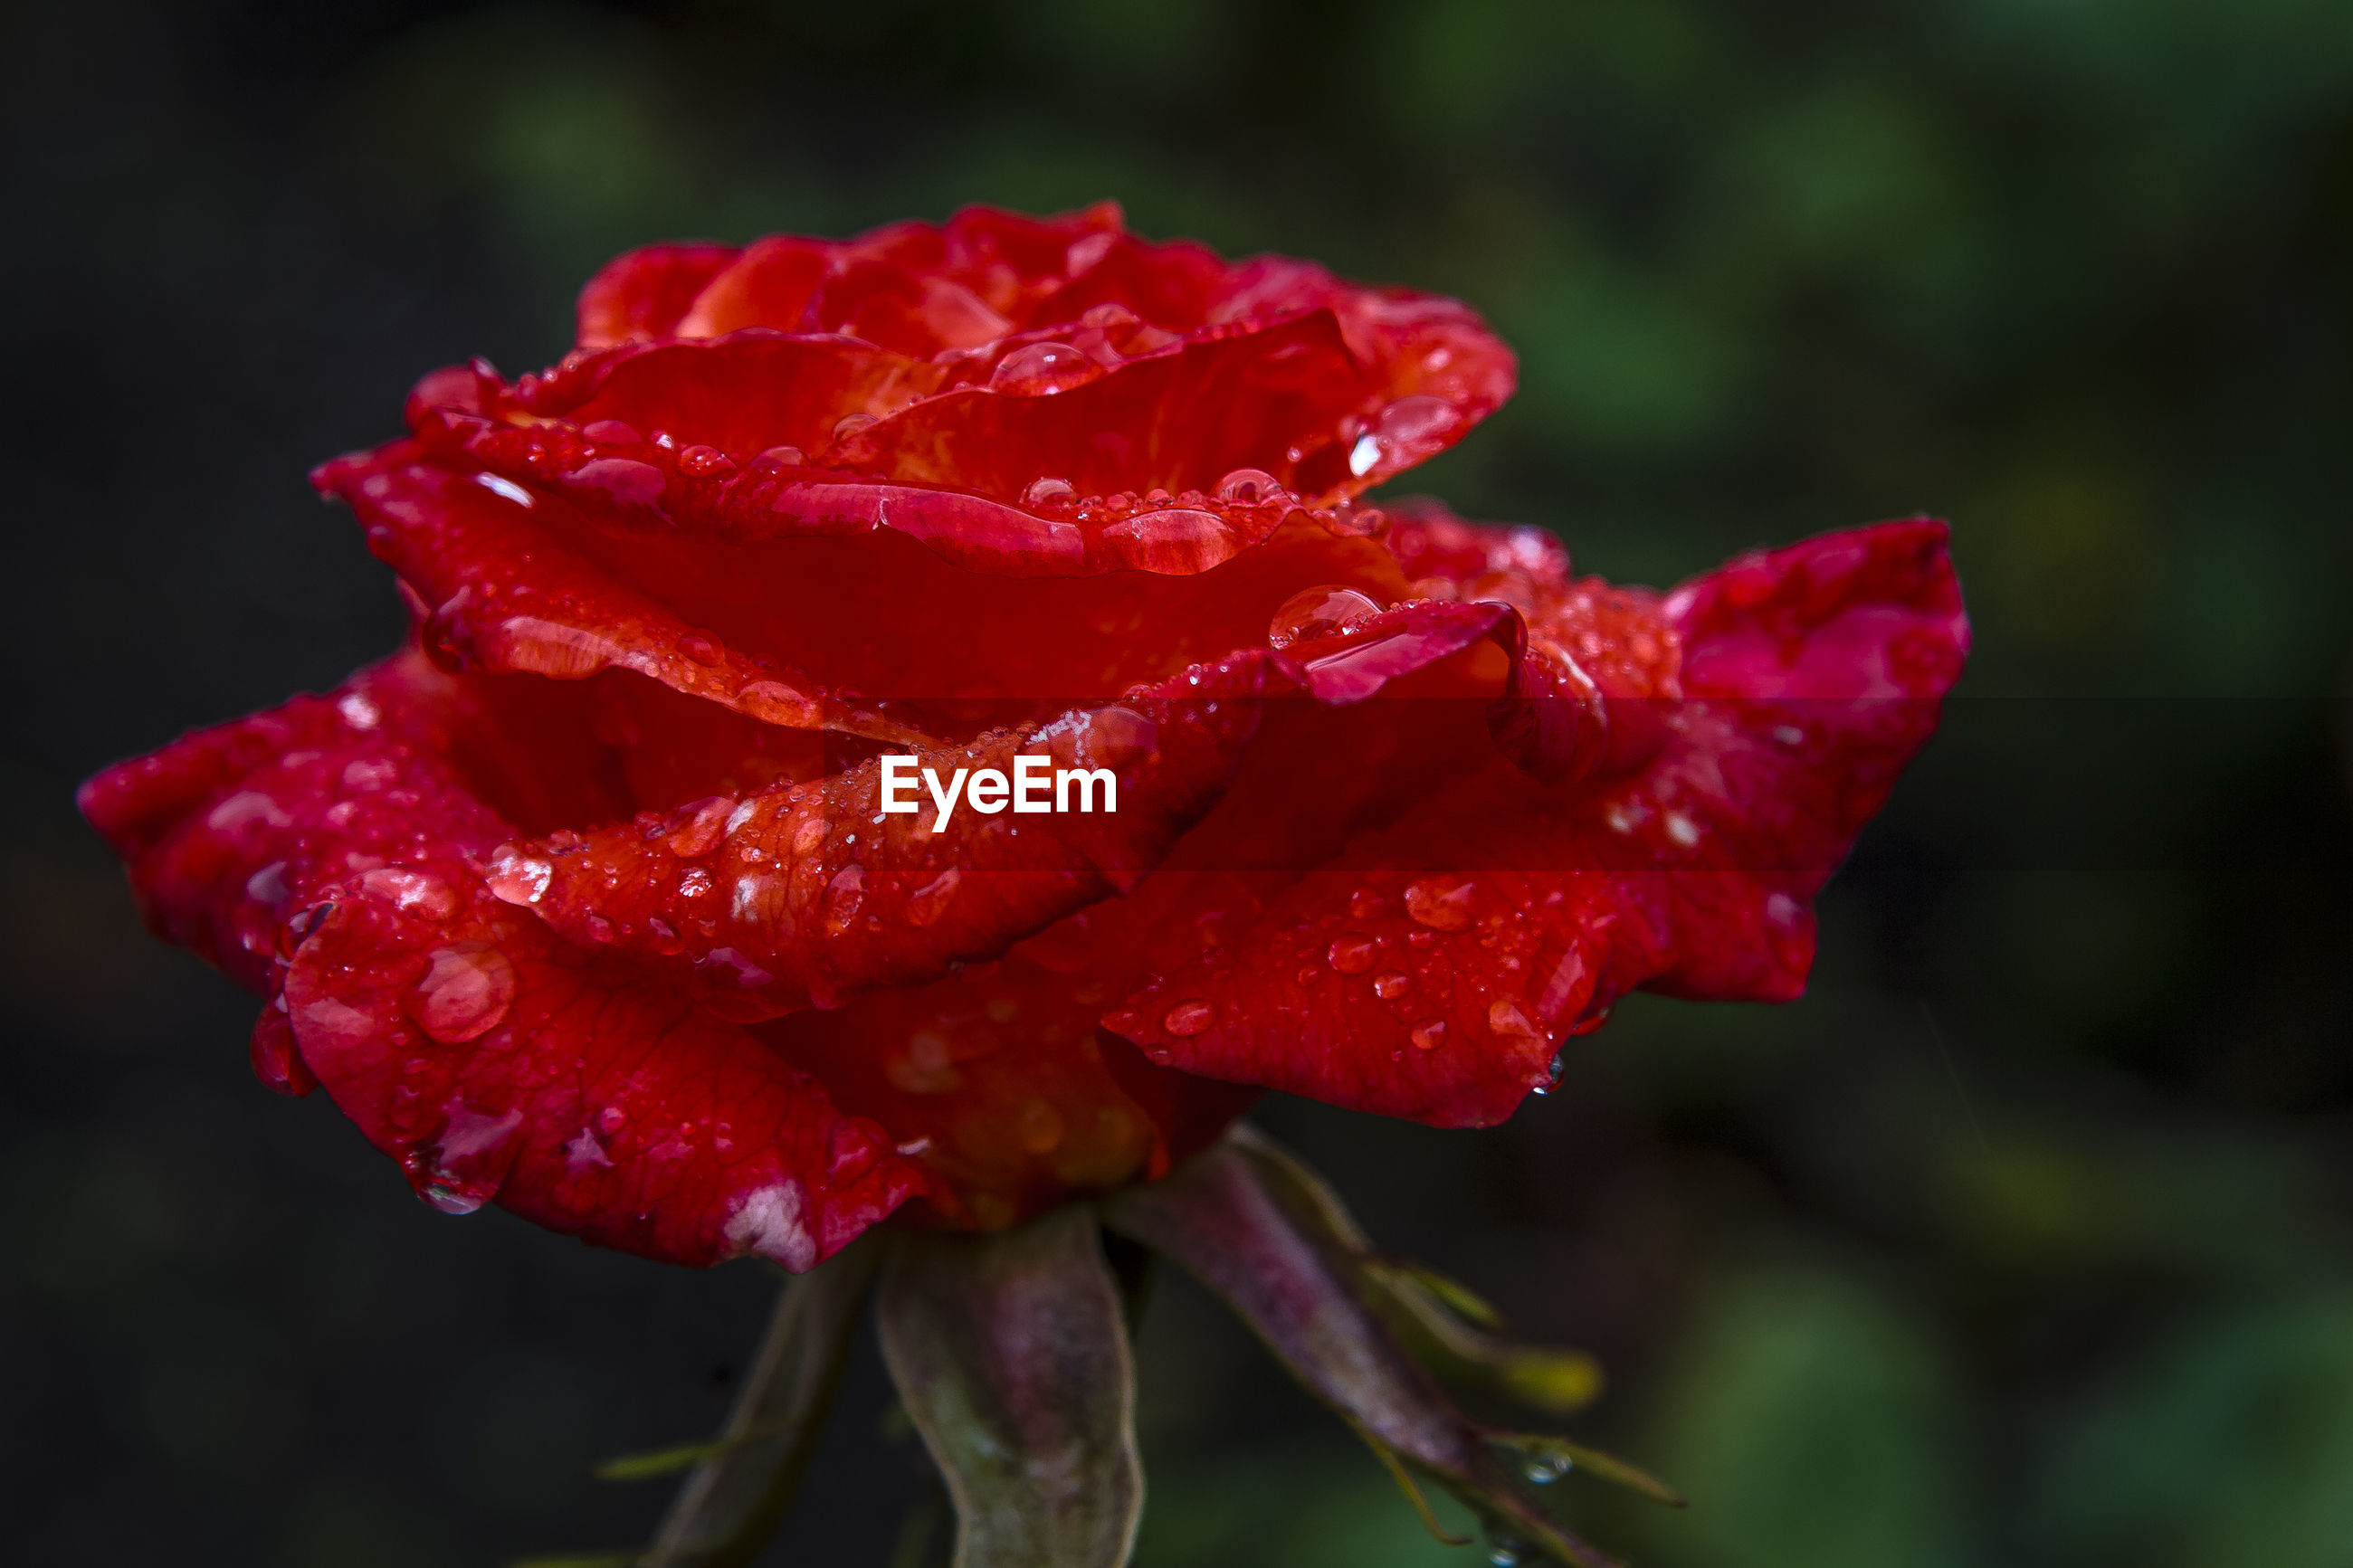 CLOSE-UP OF WET RED ROSE BLOOMING OUTDOORS DURING RAINY SEASON